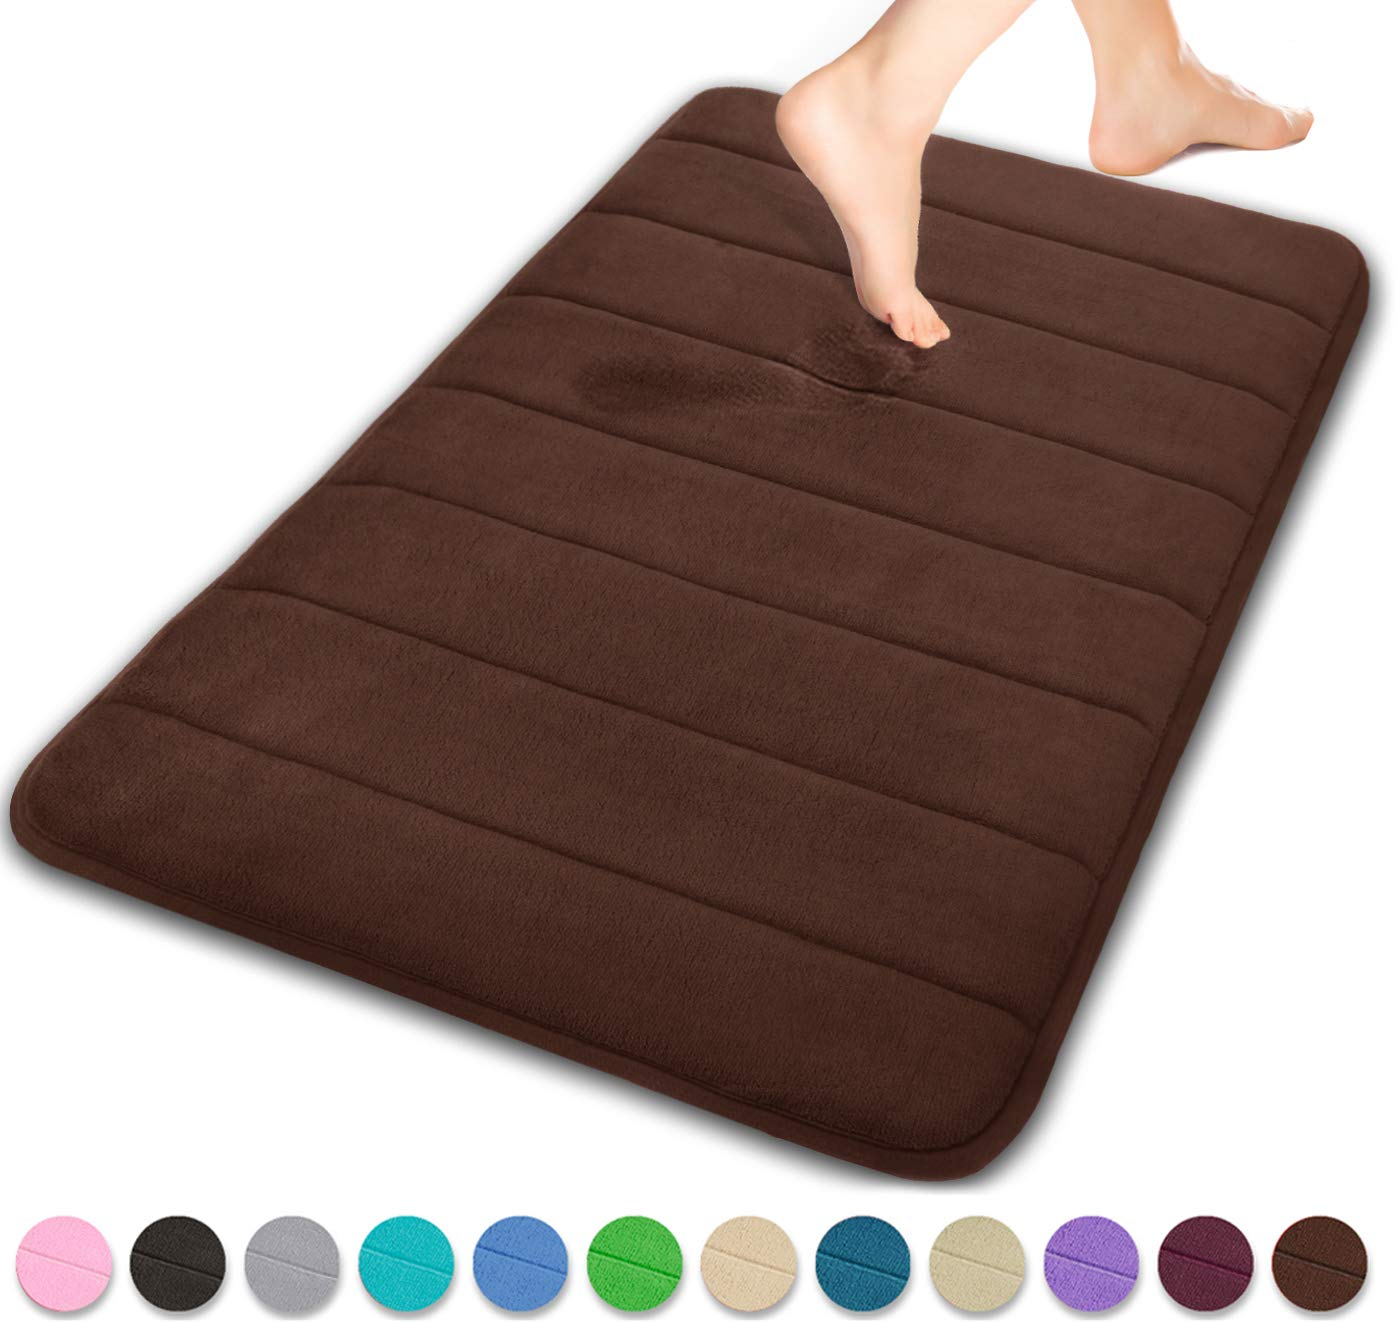 Yimobra Memory Foam Bath Mat Large Size 31.5 by 19.8 Inches, Comfortable, Soft, Super Water Absorption, Machine Wash, Non-Slip, Thick, Easier to Dry for Bathroom Floor Rug, Brown